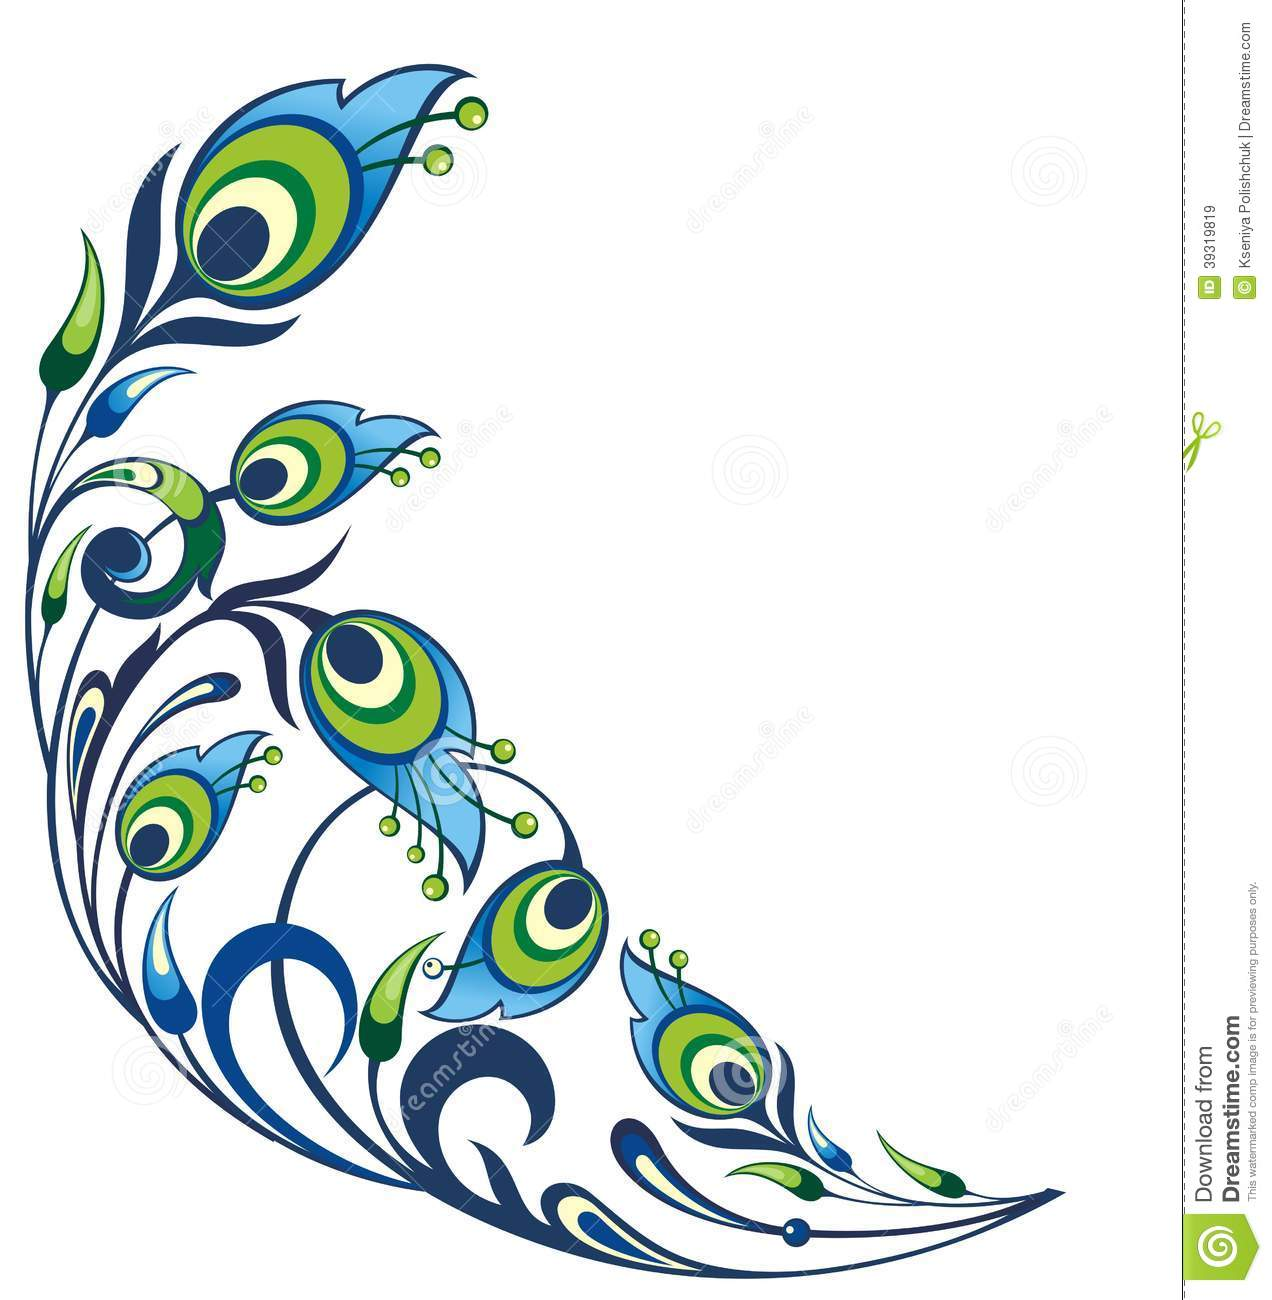 Peacock clipart frame. Feather border free download